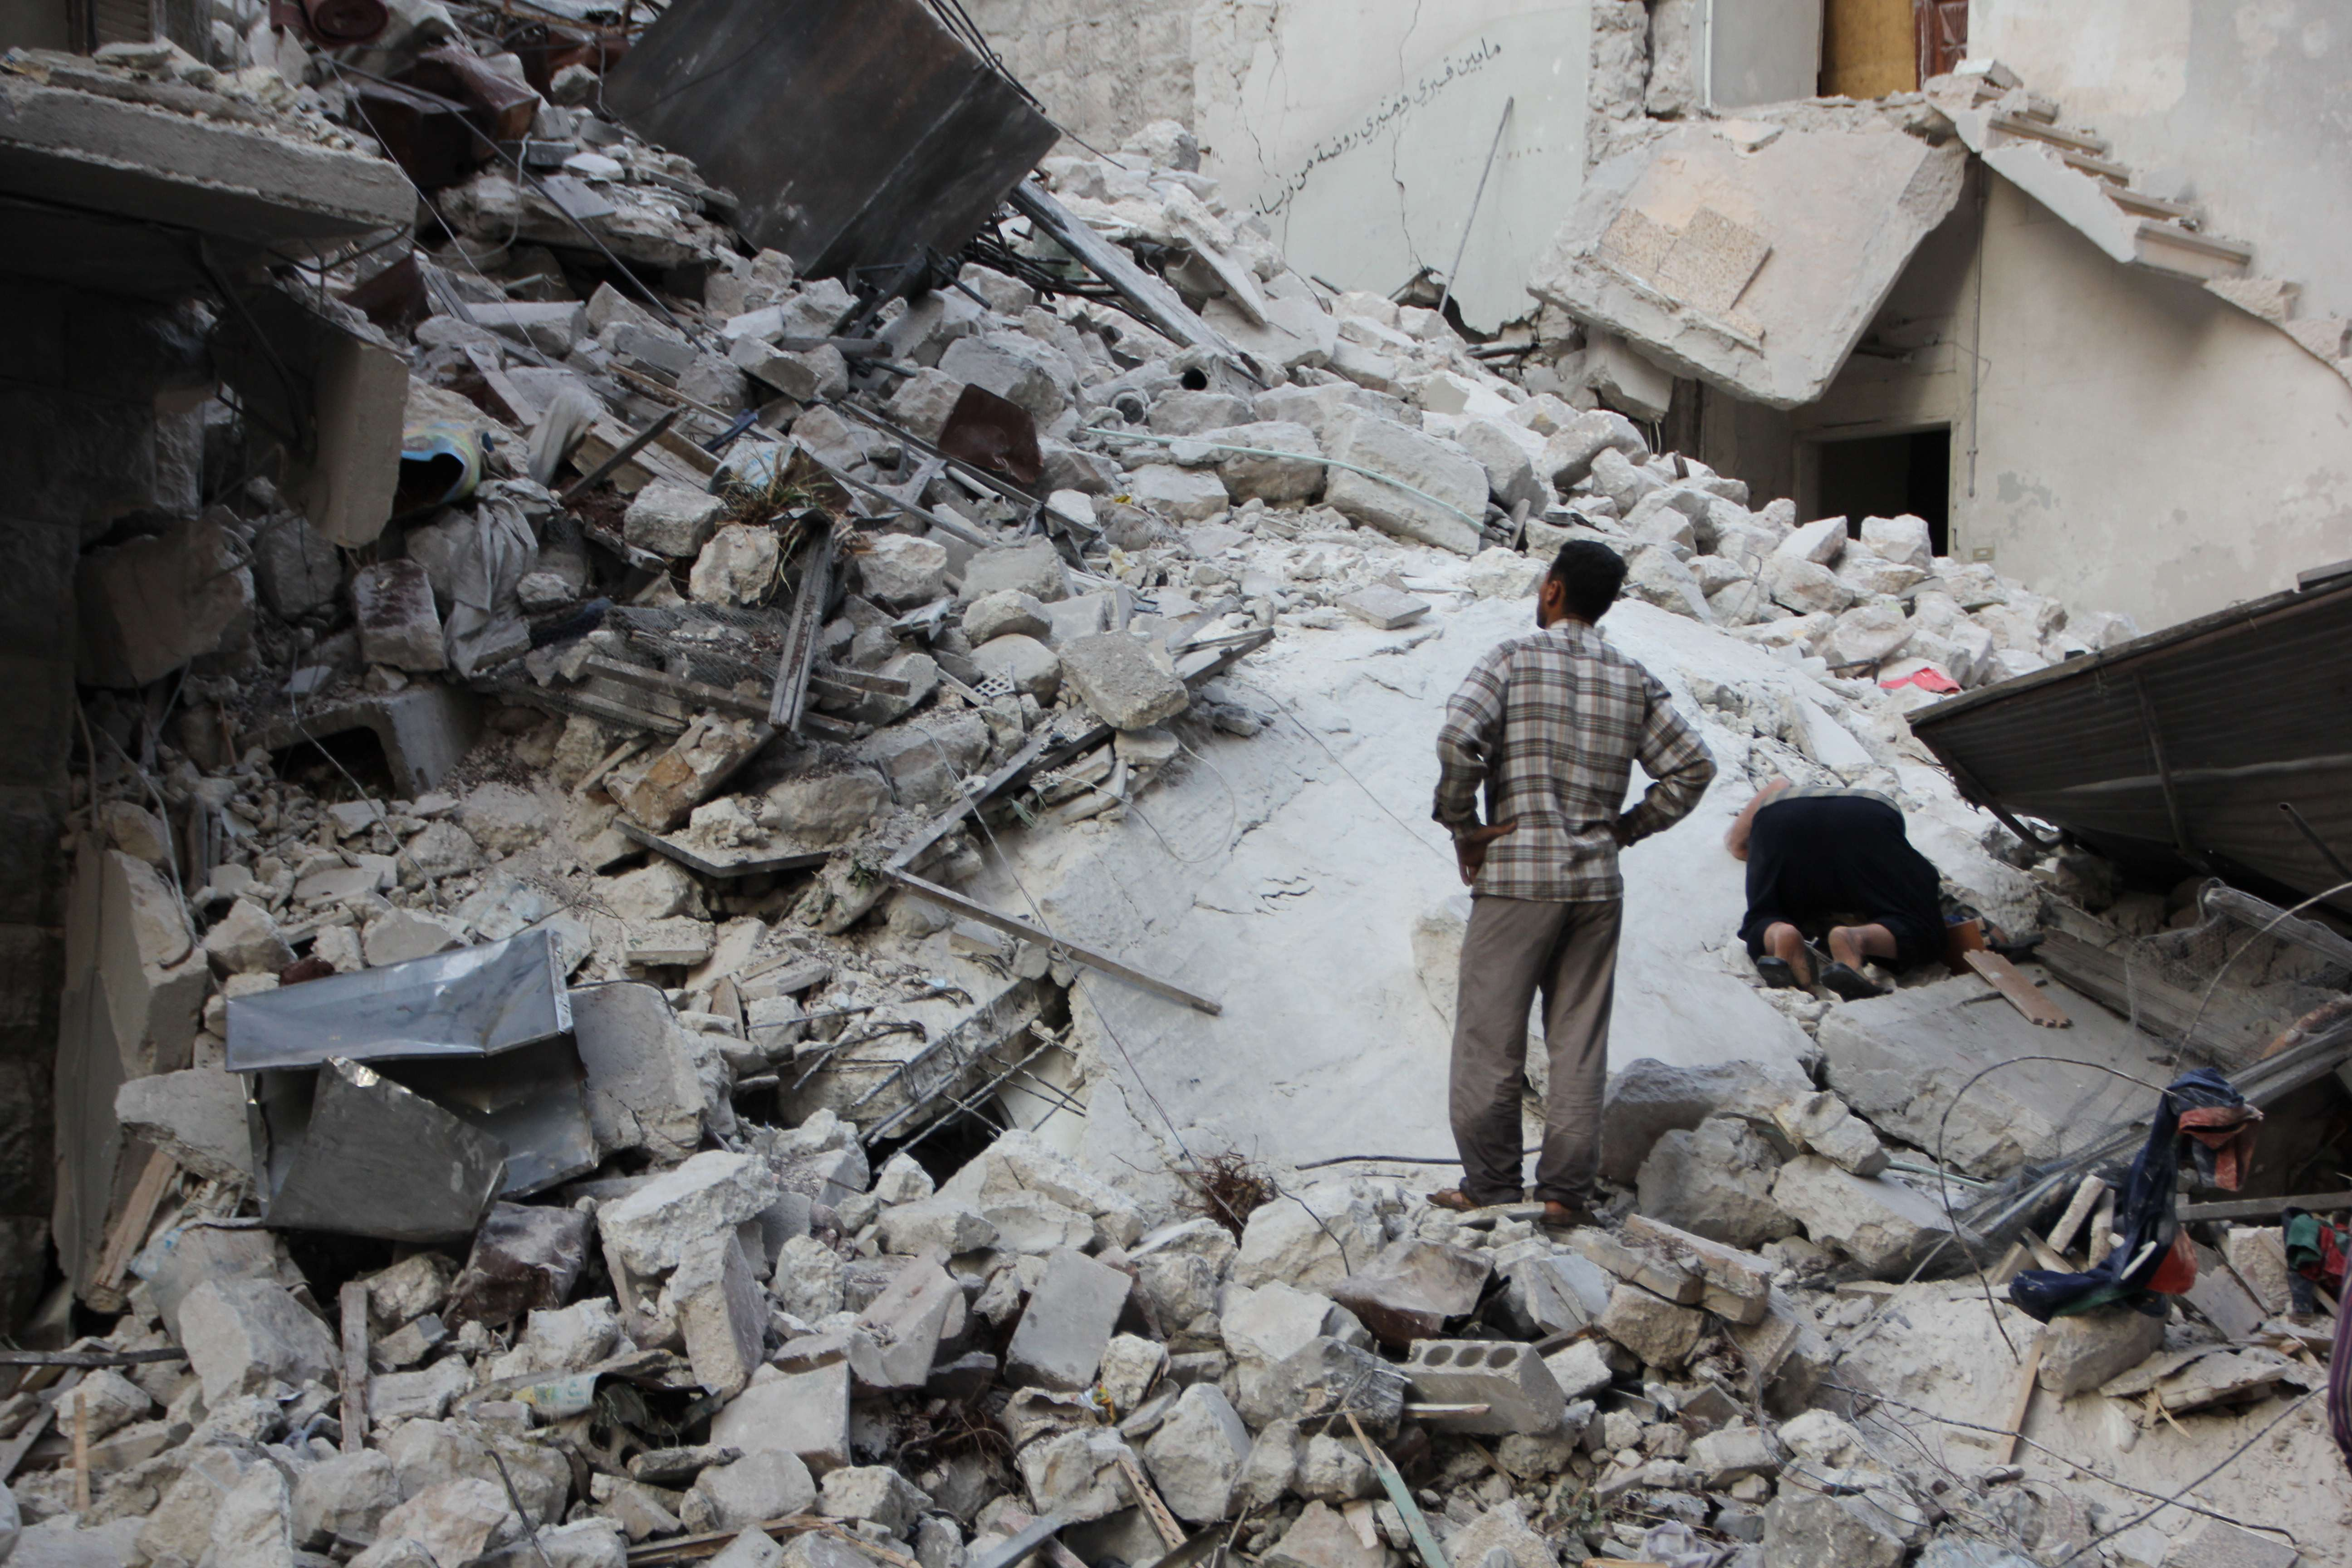 Syrian men search the rubble for survivors in a destroyed building following reported barrel bomb strikes by Syrian government forces on May 26, 2014 in the northern Syrian city of Aleppo. Syrian President Bashar al-Assad, facing two little-known challengers in a June 3 presidential election, is widely expected to clinch a third seven-year term despite Syria's civil war, which has killed more than 160,000 people.  (AFP PHOTO / BARAA AL-HALABI)